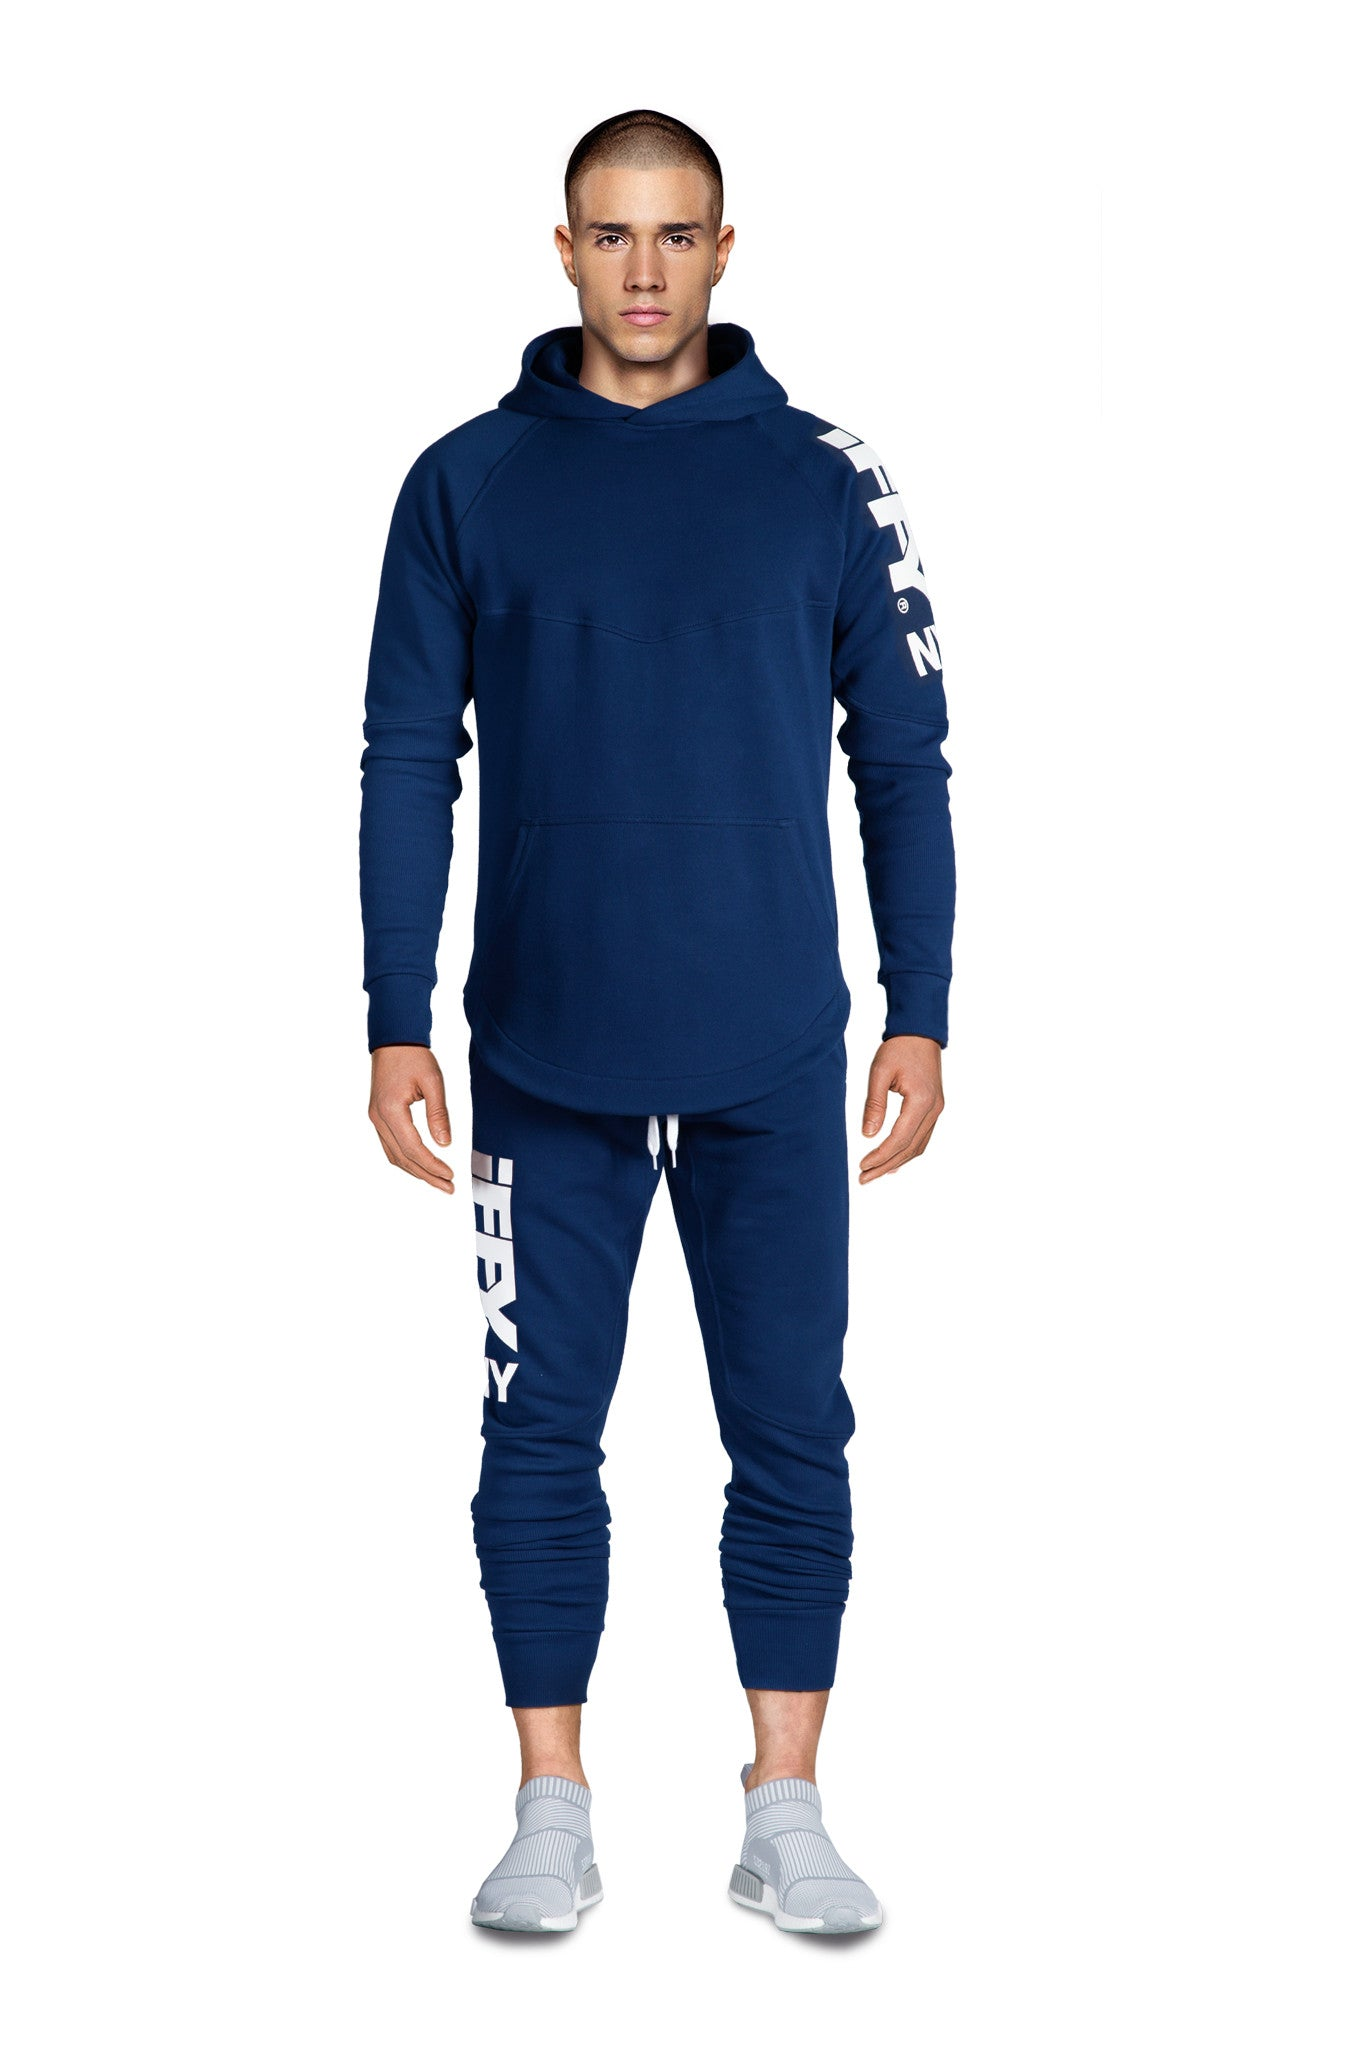 IFFY NY Hunter suit in marine blue (Hoodie)